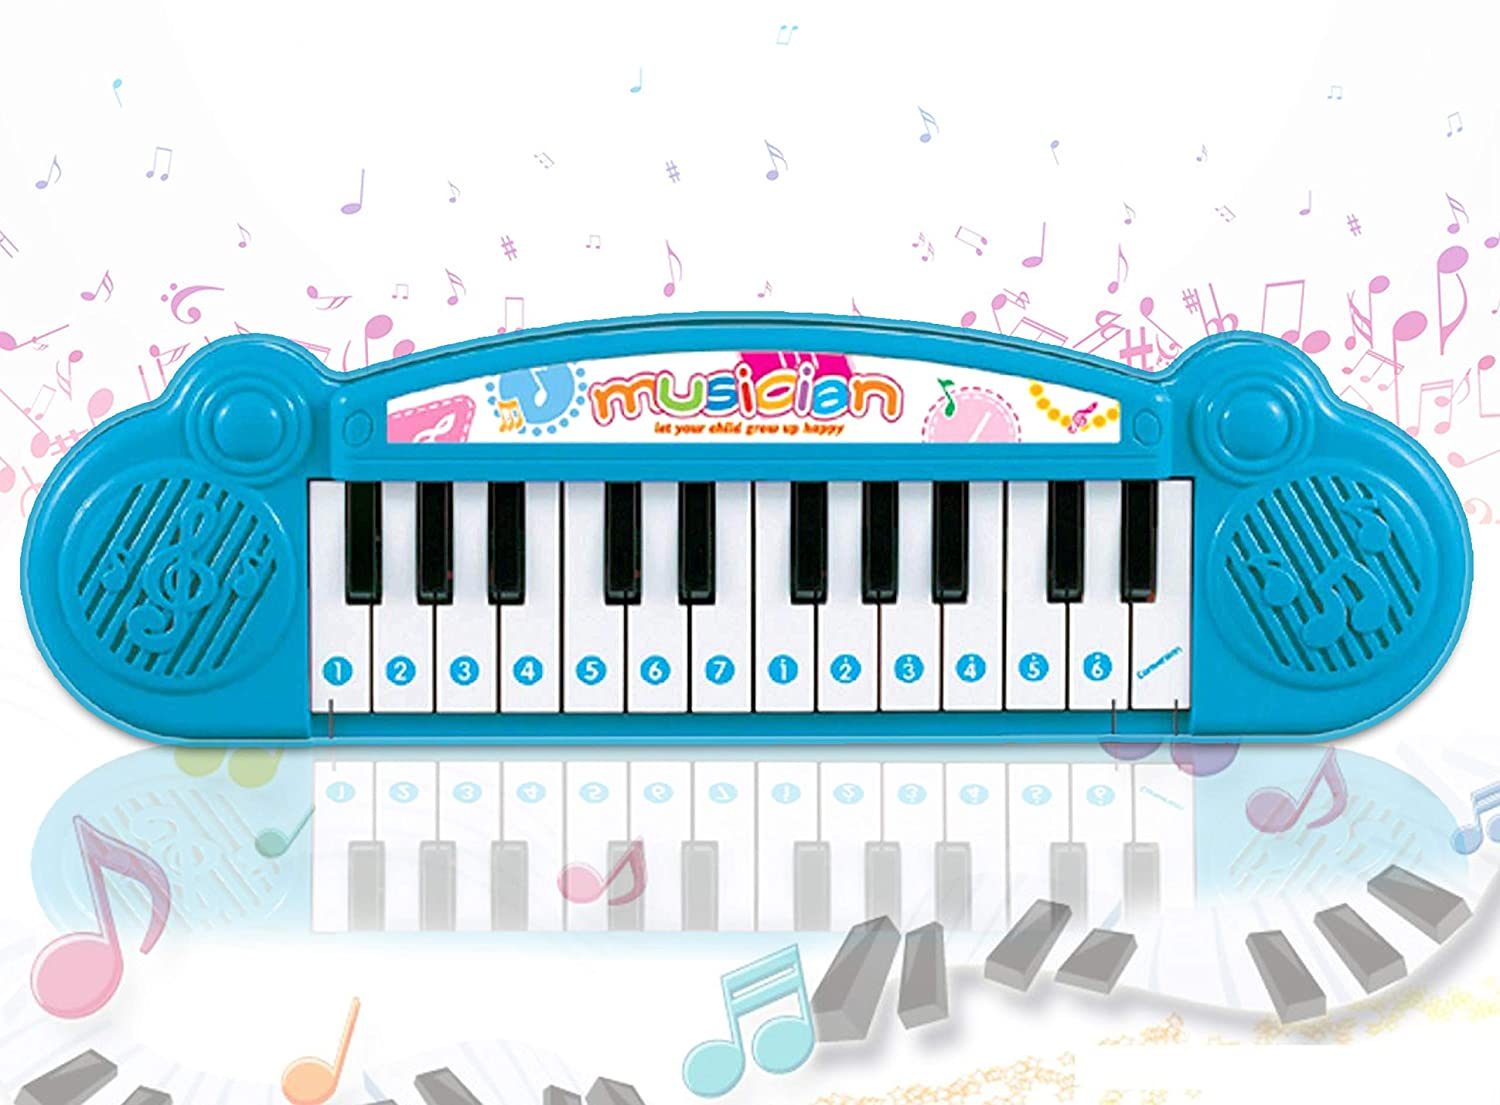 Popsugar Mini Musical Keyboard with 24 Keys for Kids